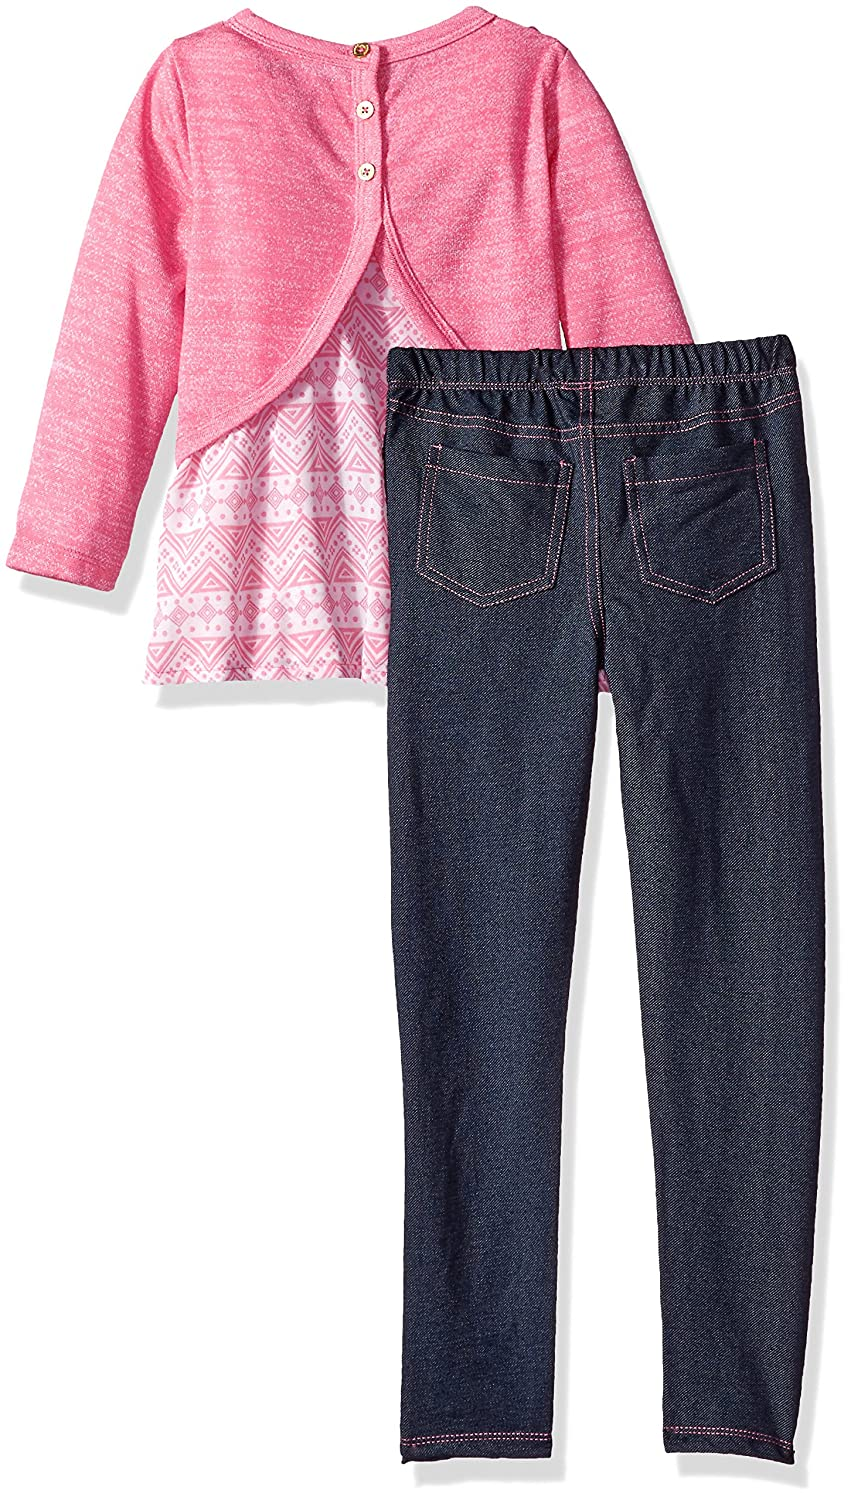 More Styles Available kensie Girls Fashion Top and Legging Set